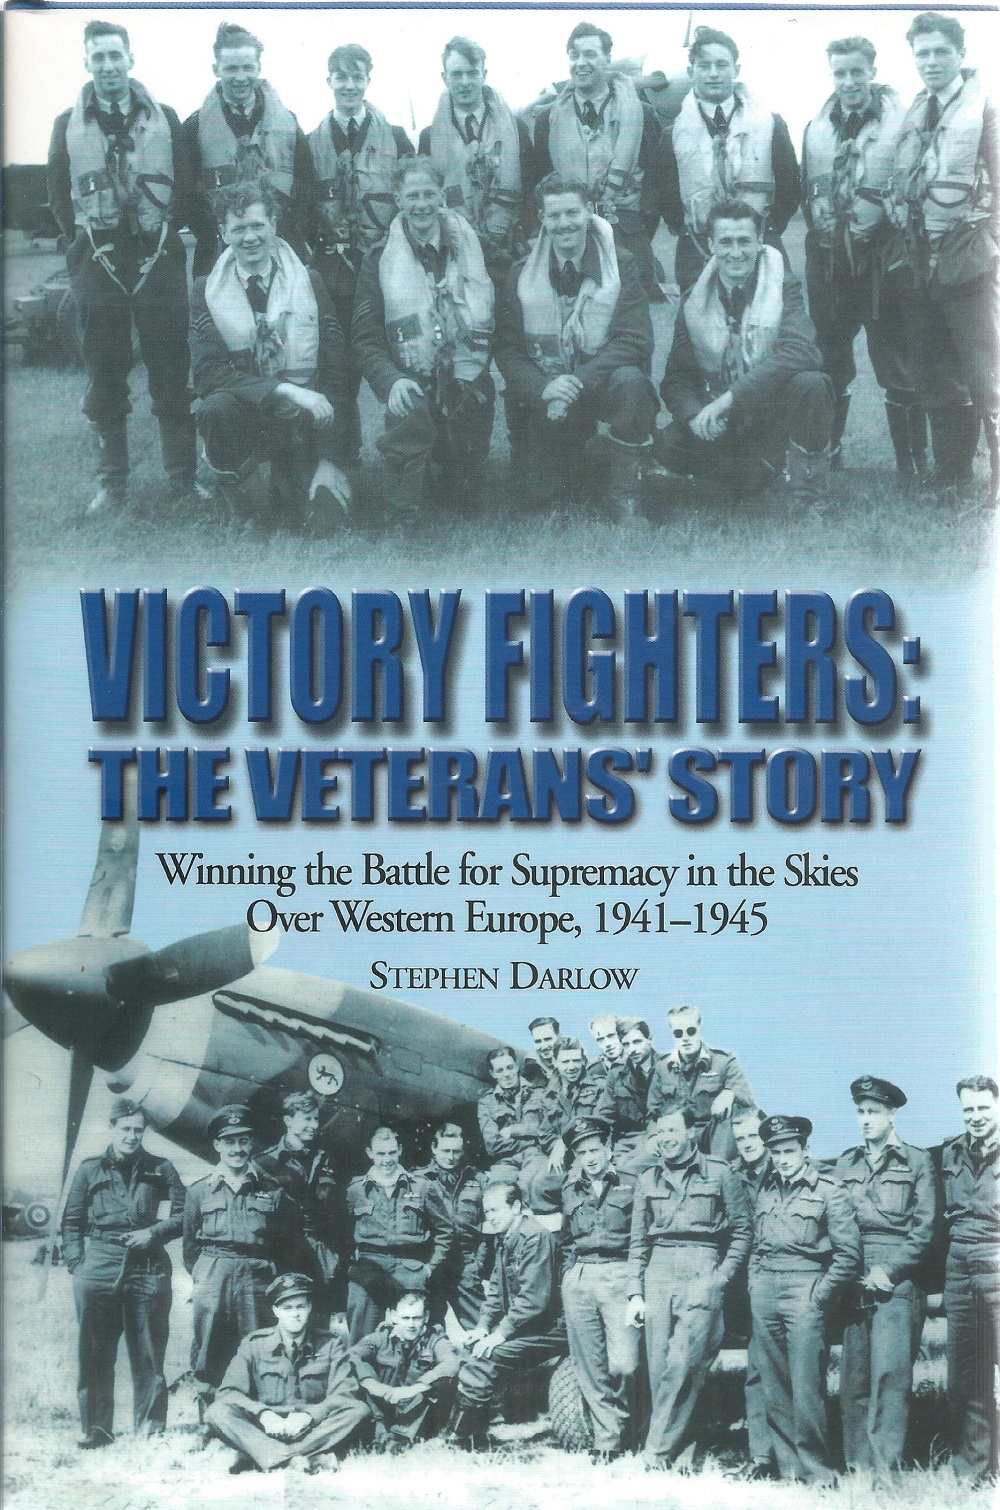 Stephen Darlow. Victory Fighters: The Veterans Story. Winning the battle for supremacy in the